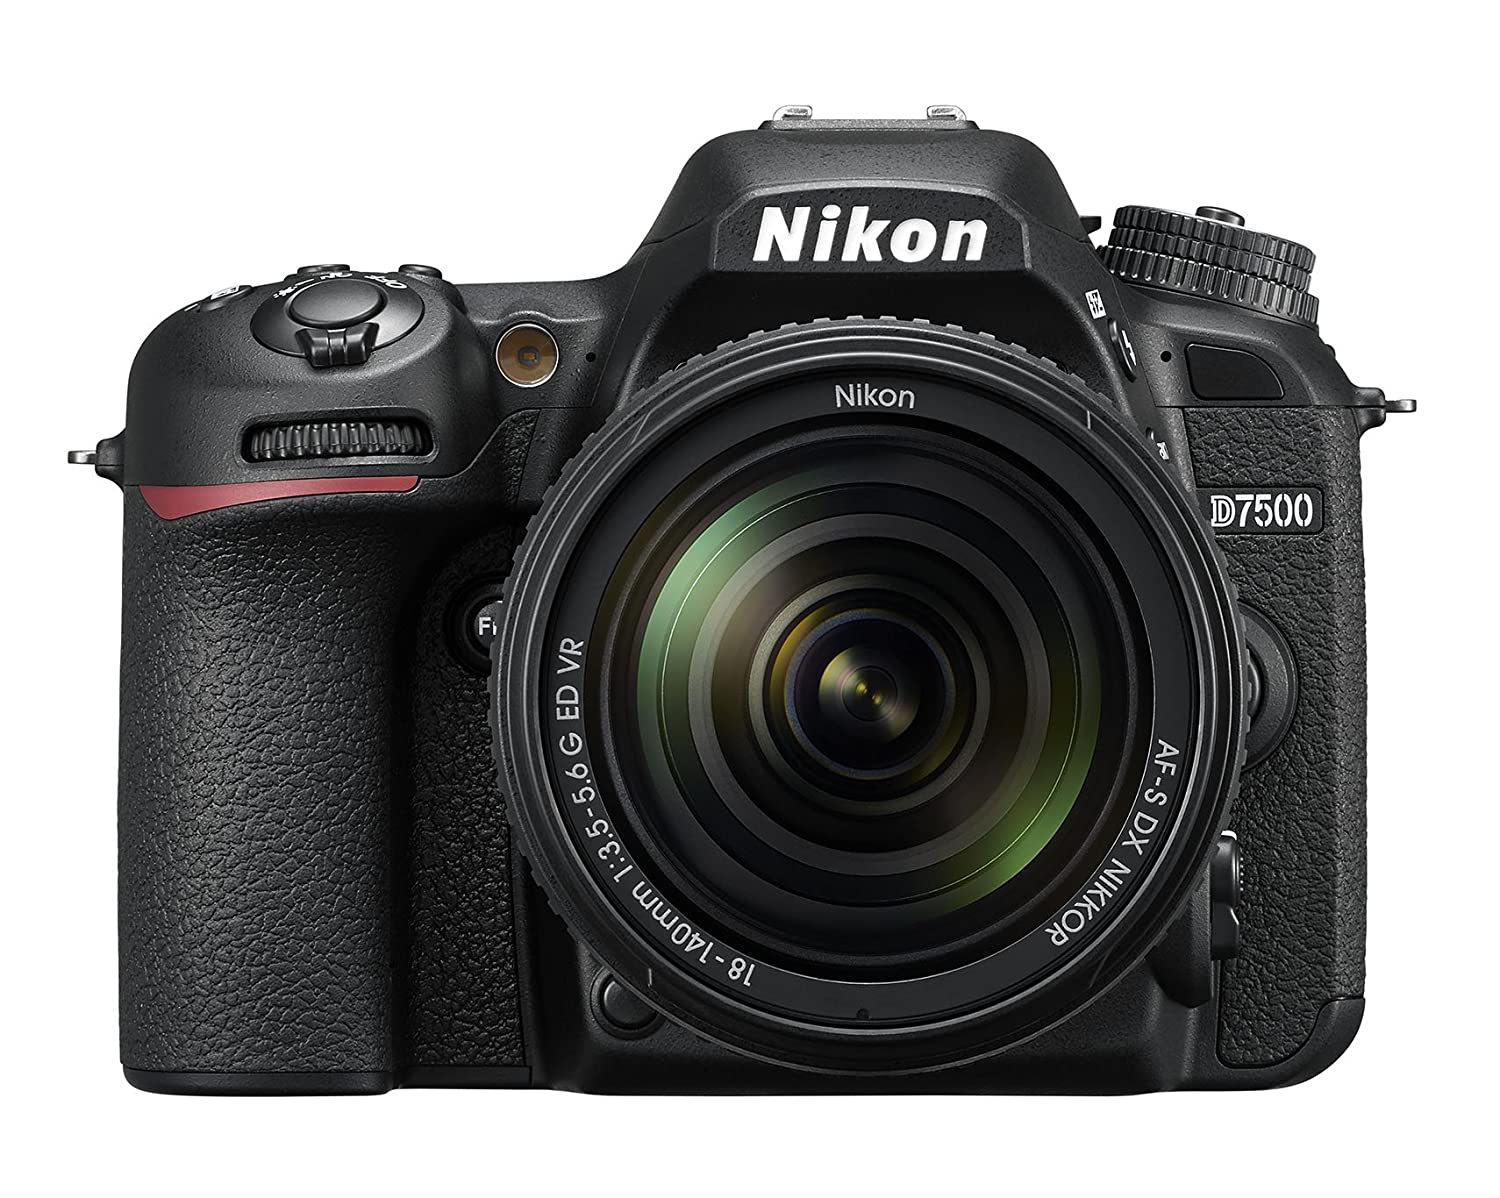 Nikon D7500 best suggested latest camera